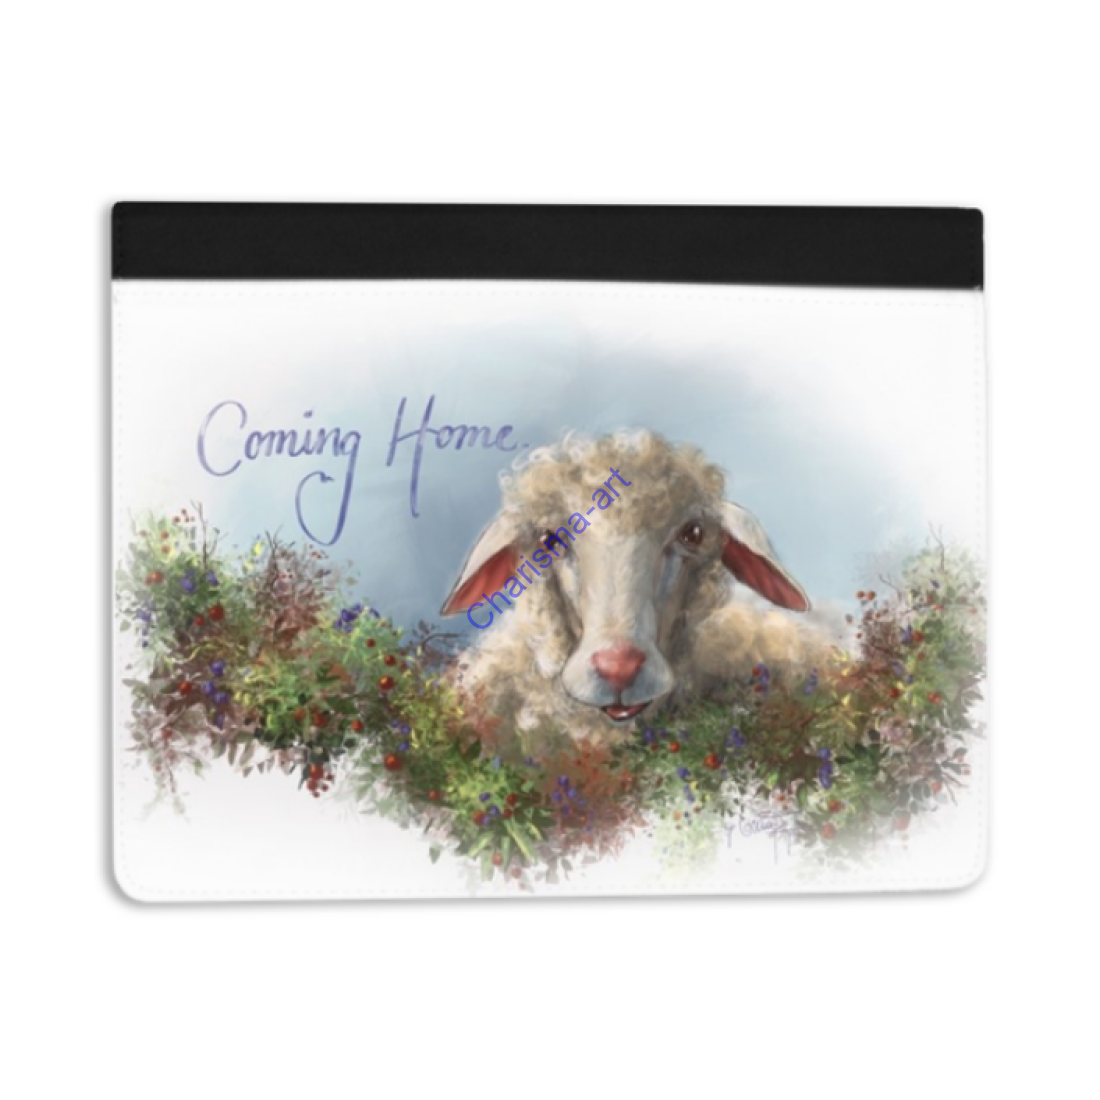 Lost Sheep Coming Home Digital Wall Art Prints